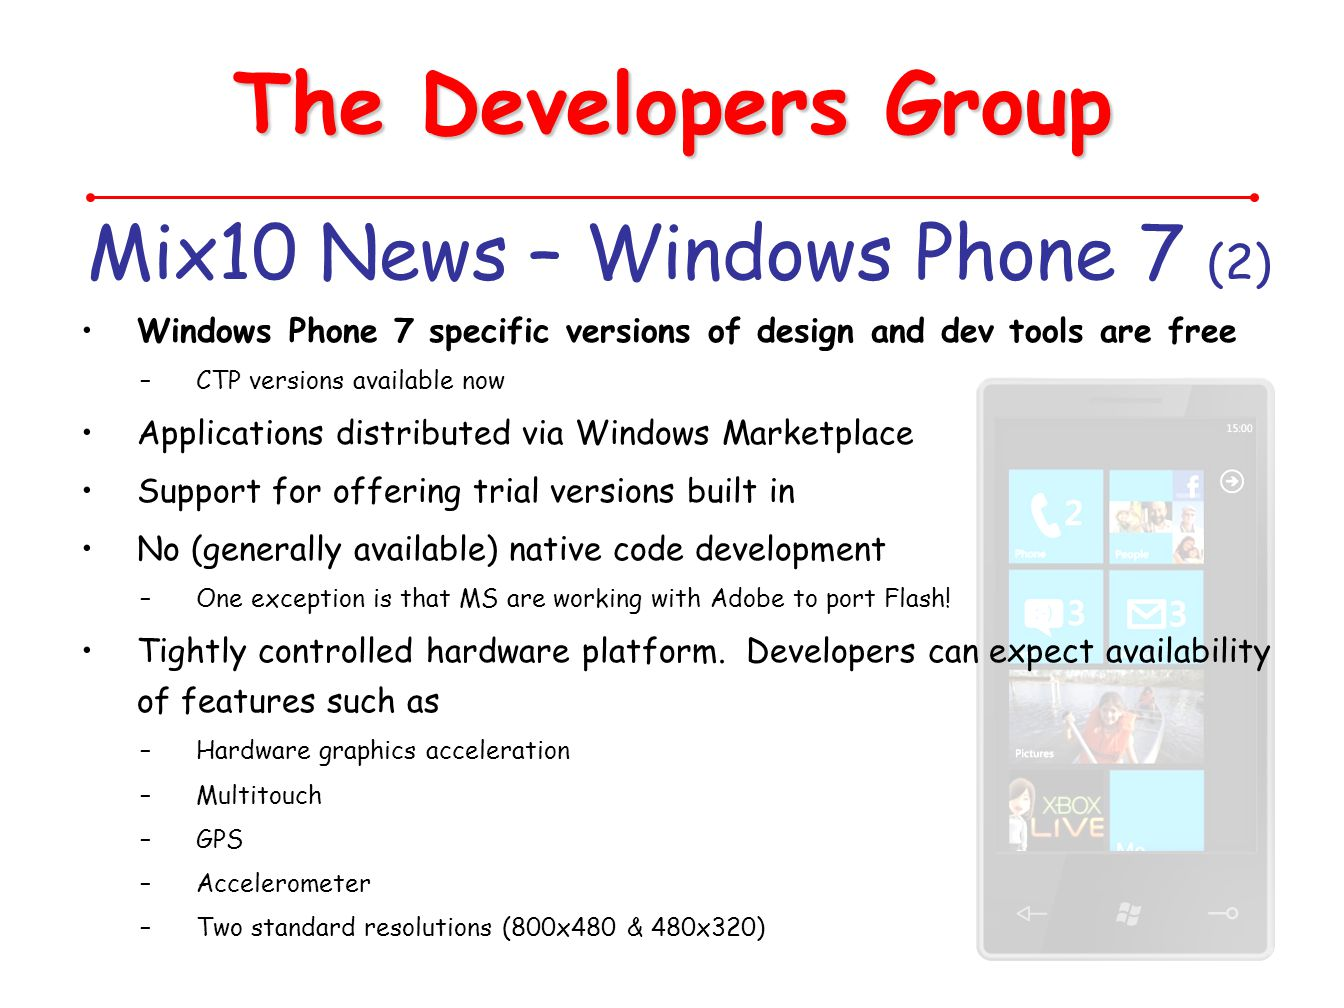 The Developers Group Mix10 News – Windows Phone 7 (2) Windows Phone 7 specific versions of design and dev tools are free –CTP versions available now A